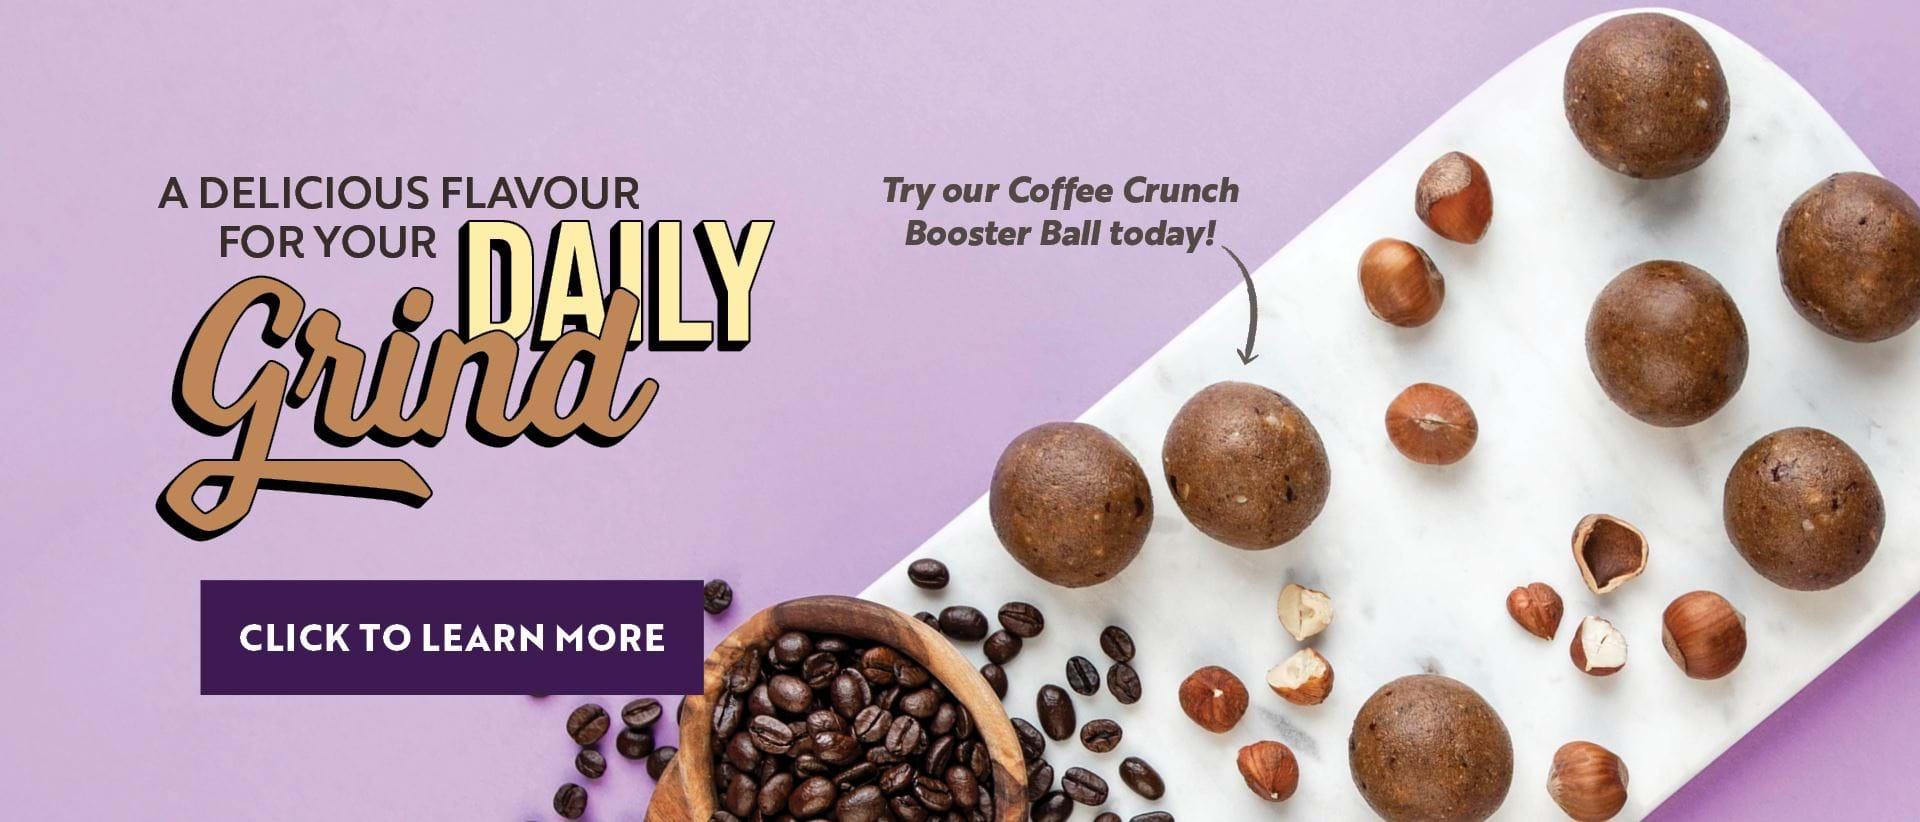 Going back to school and work requires a little extra energy - get a boost from the Coffee Crunch Booster Ball!